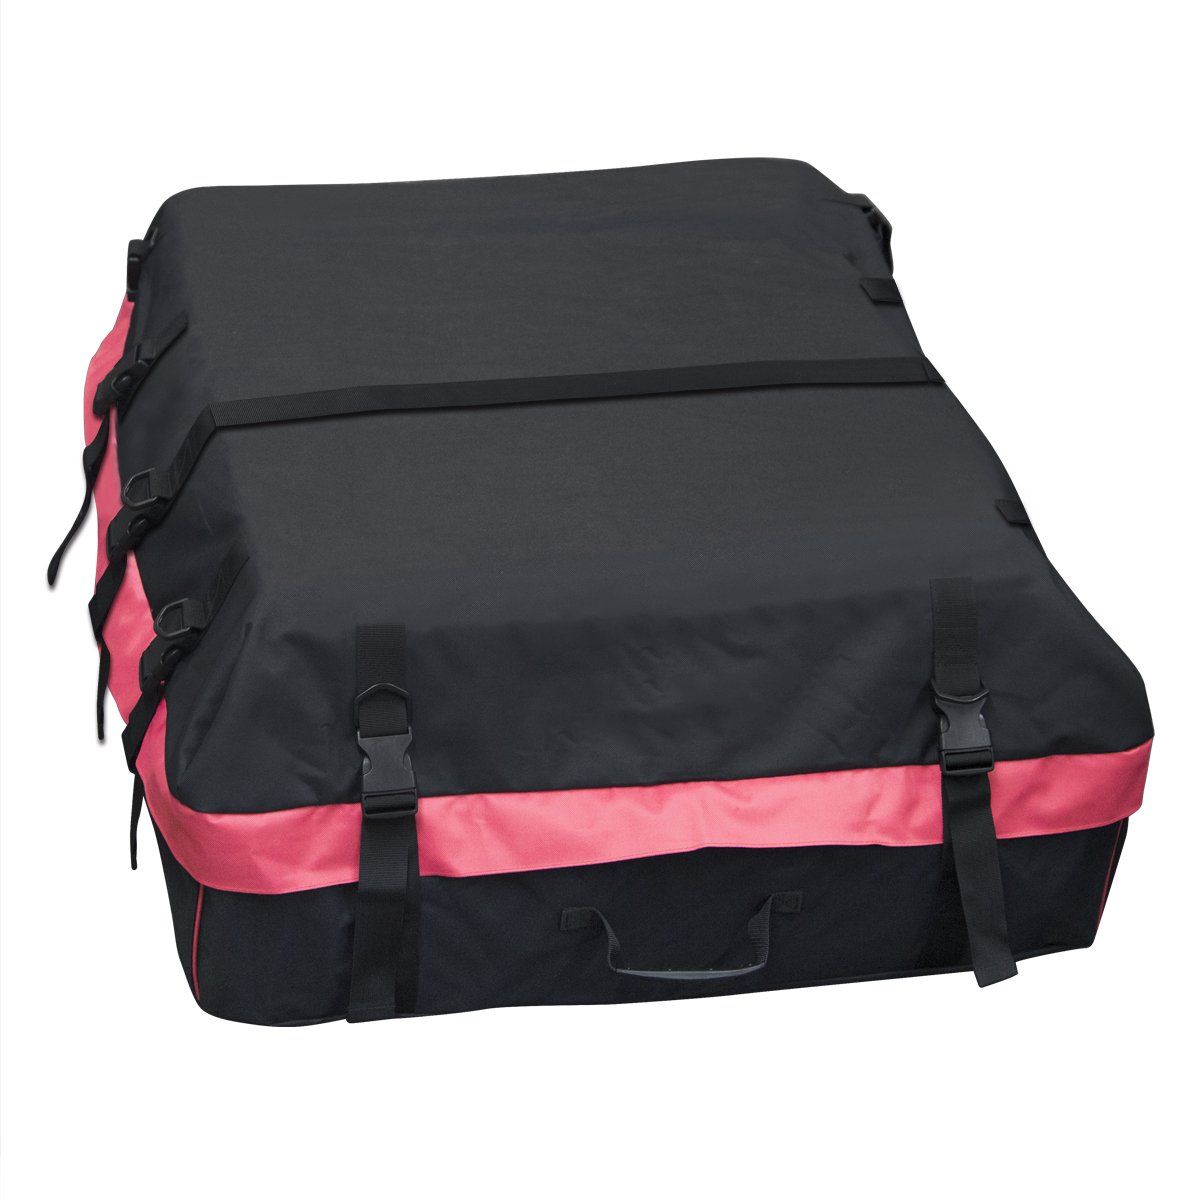 Car Roof Bag Cargo Bag:Storage Box Roof Top Bag For Travel ,Super Strong Car Top Carrier Waterproof 10 Cubic Feet Storage Box , For Any Car With Roof Rails